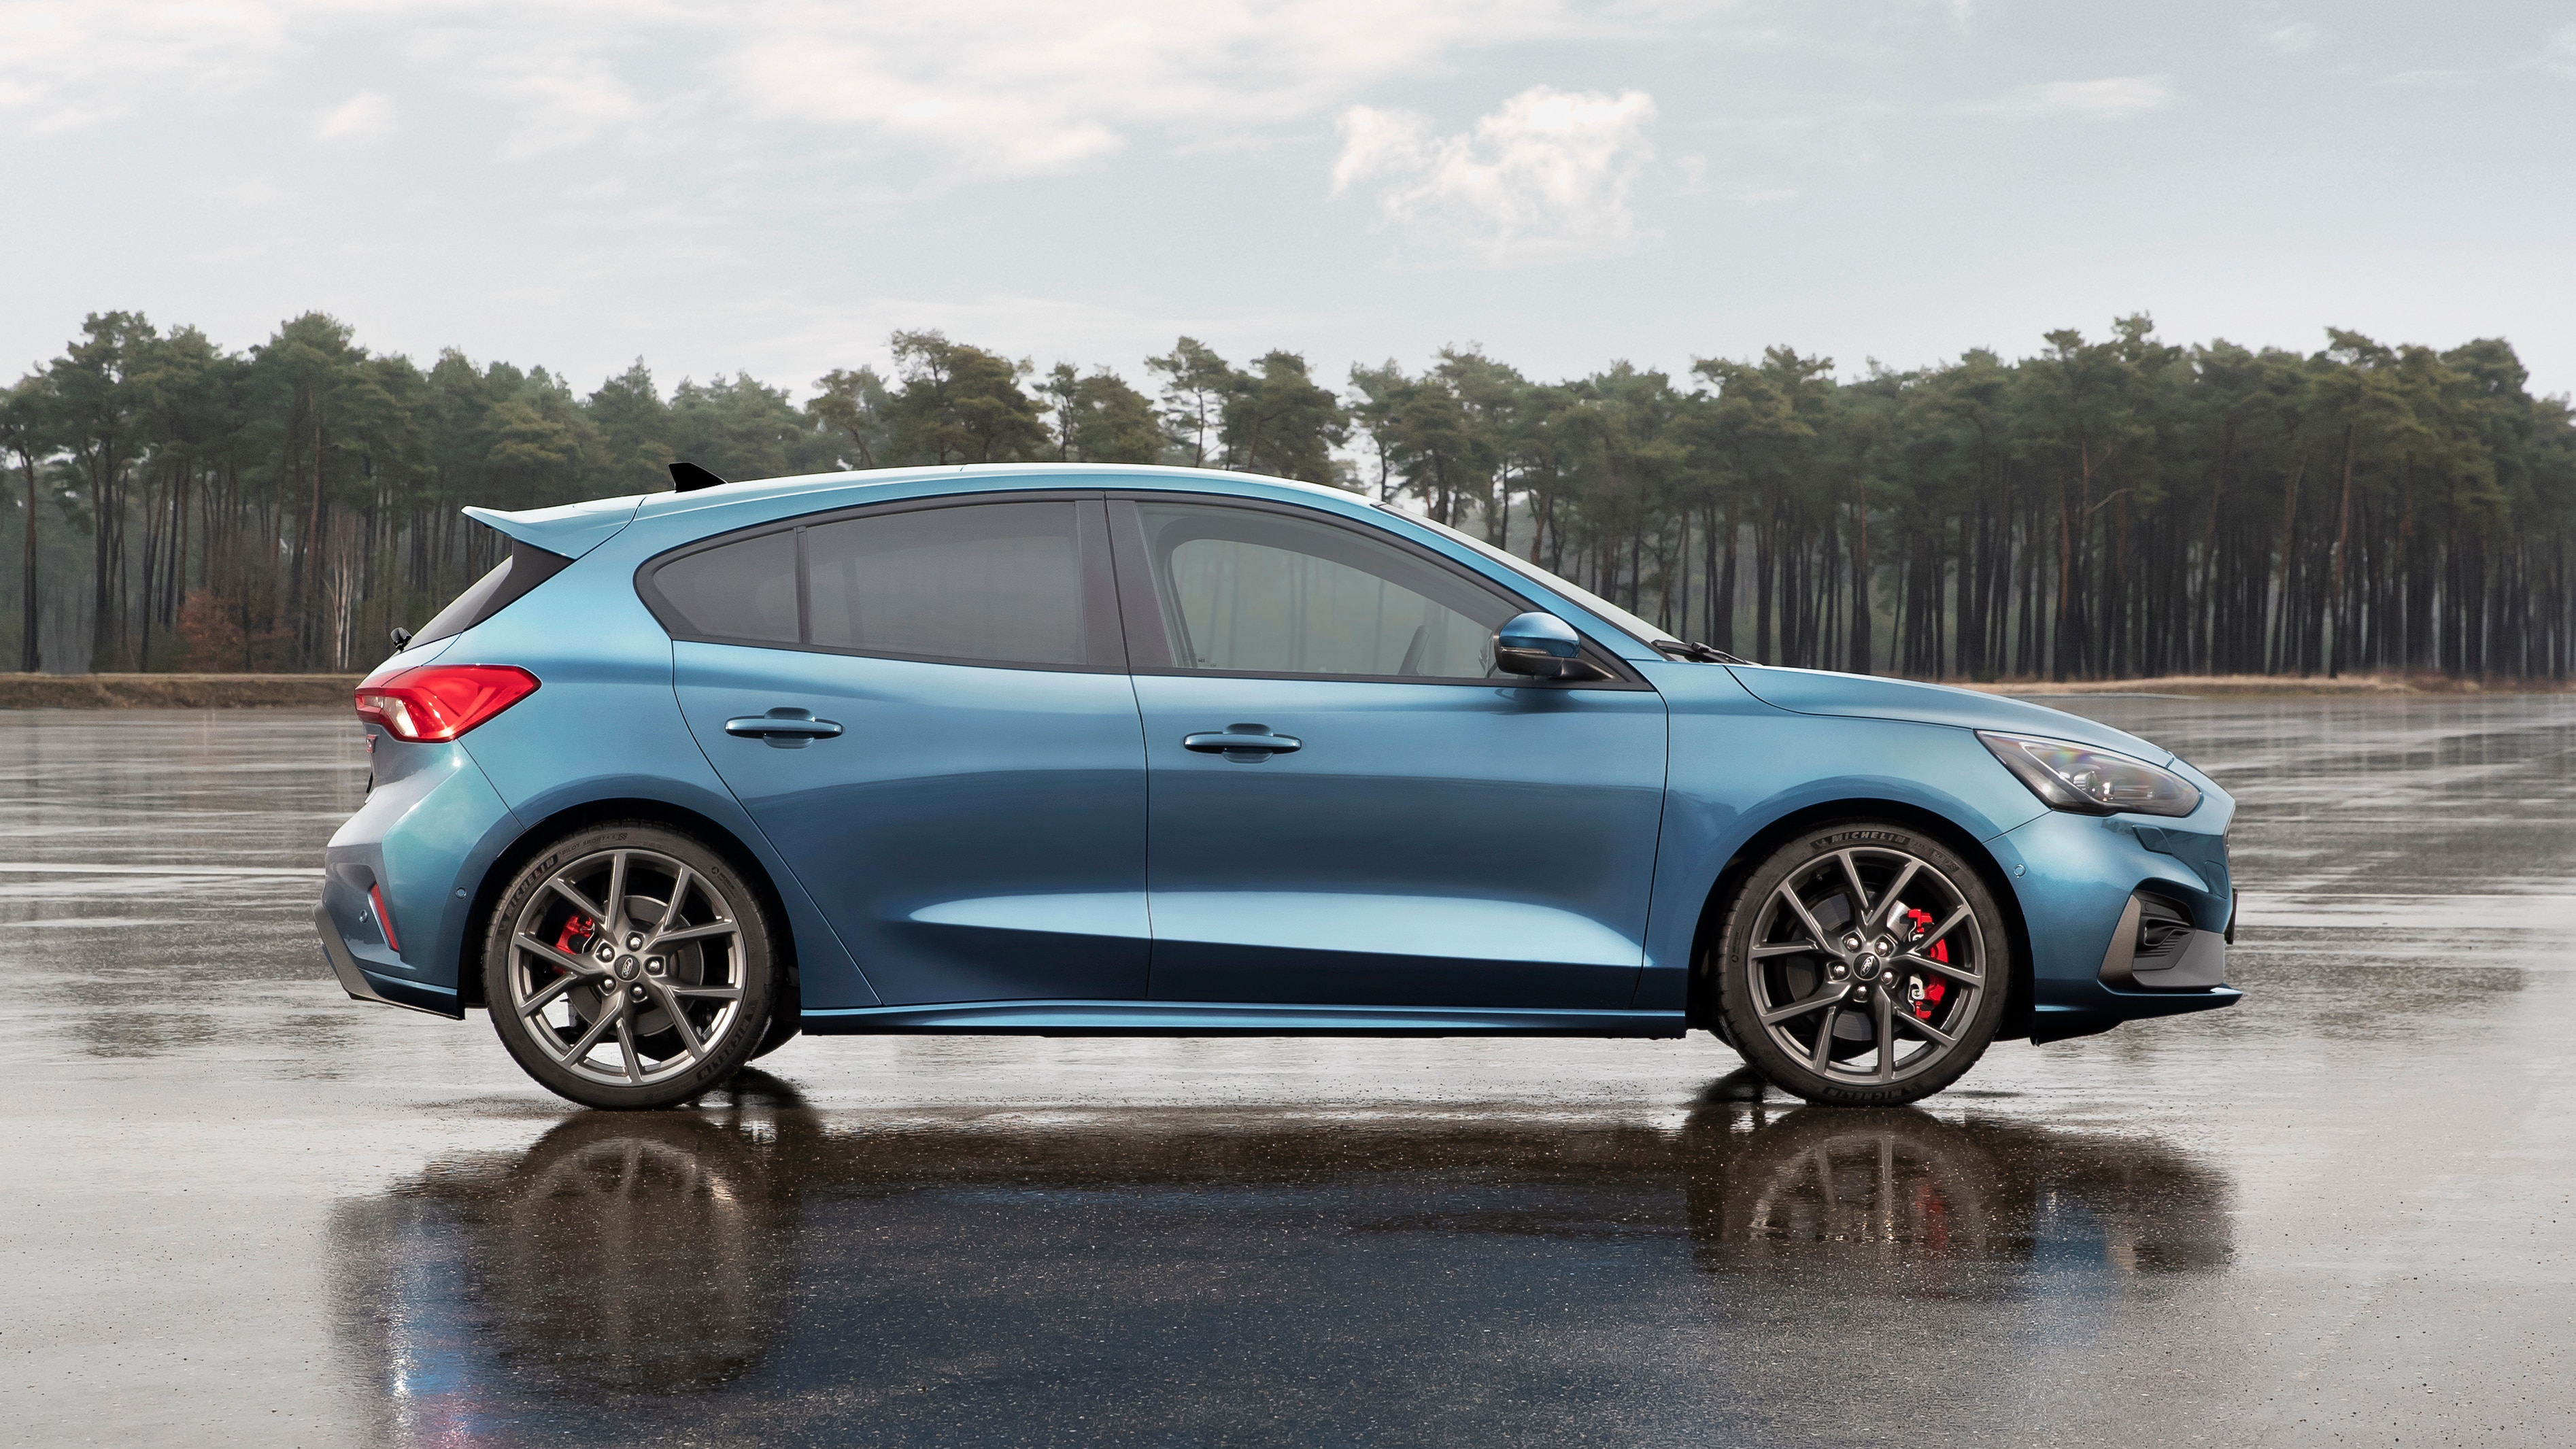 2019 Ford Focus St 276 Hp Sweet Looks Europe Only Automobile